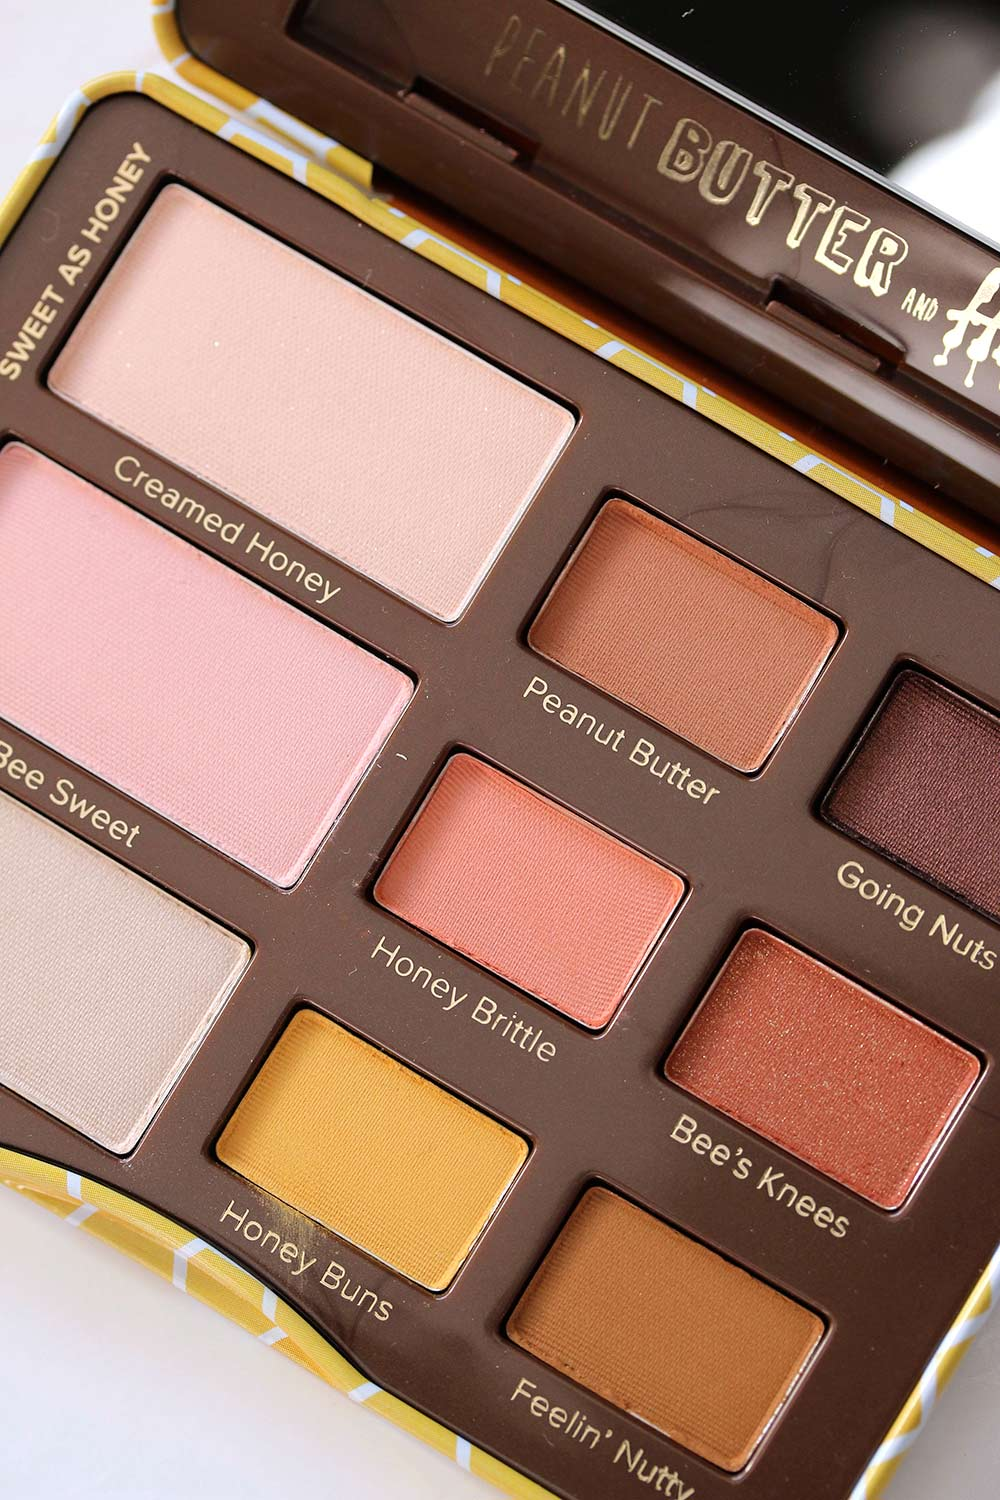 too faced peanut butter honey palette 2